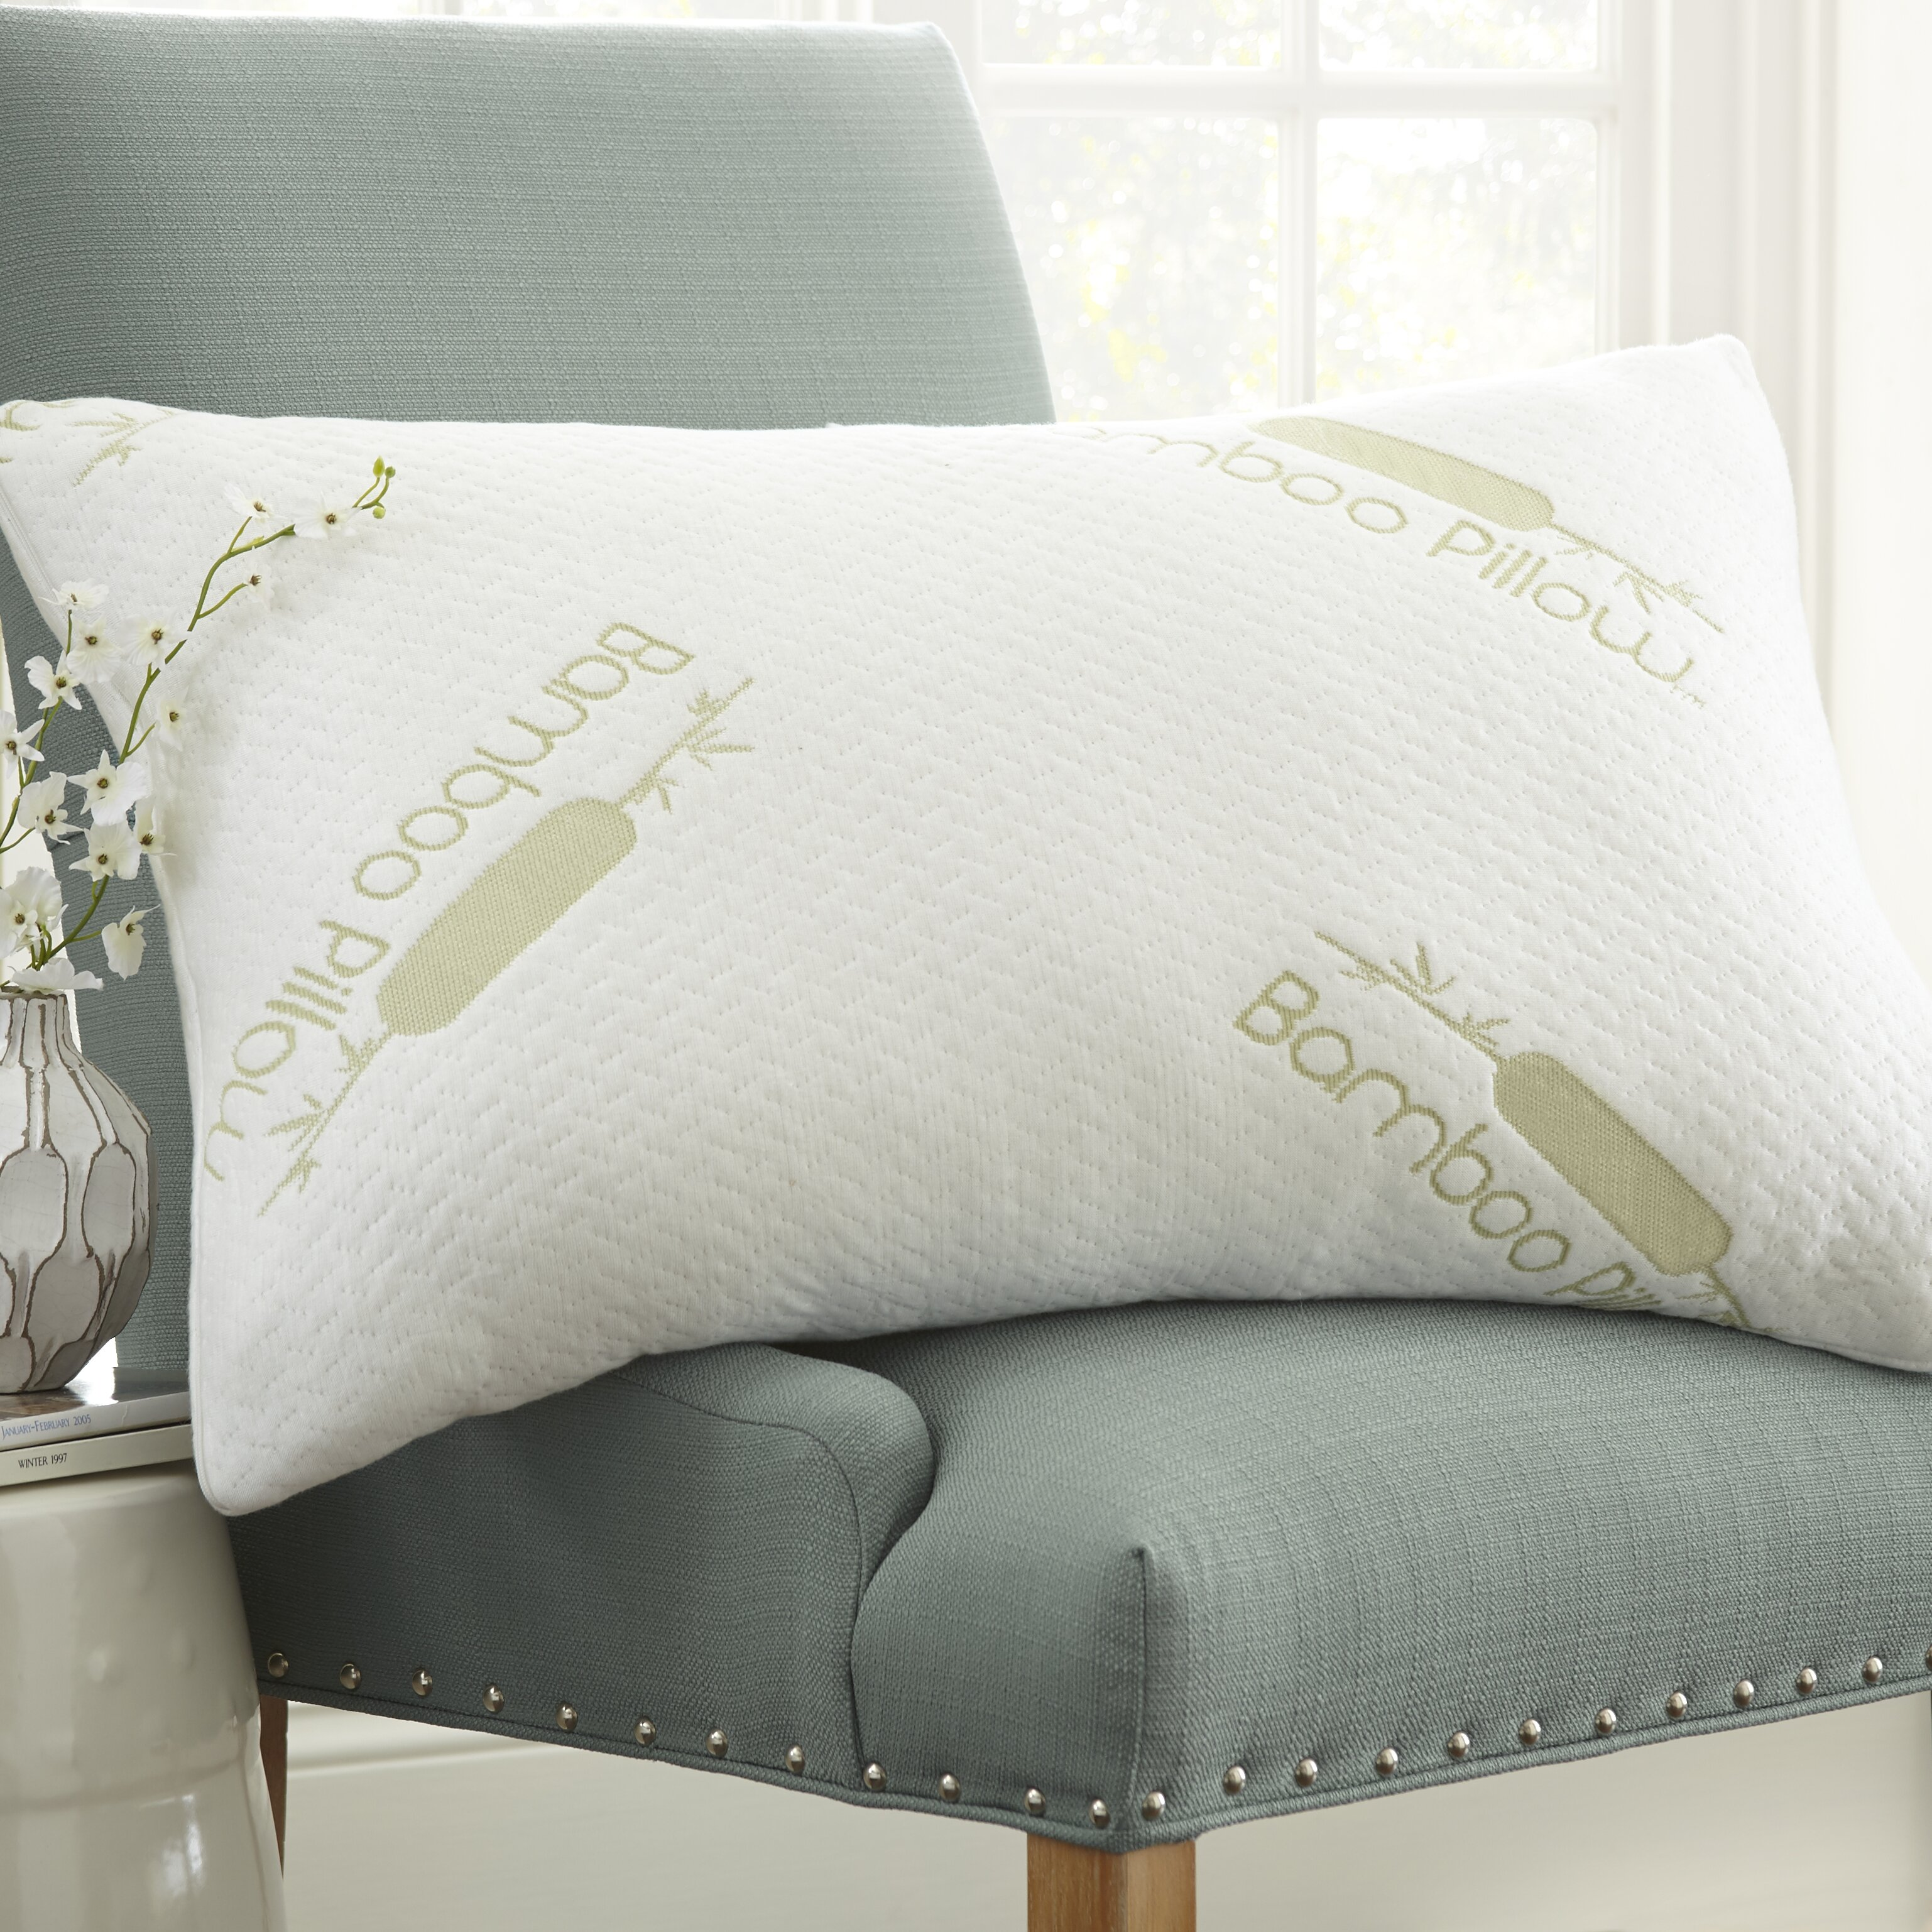 knit hayneedle detail cfm product bed of essence bamboo reviews set pillow